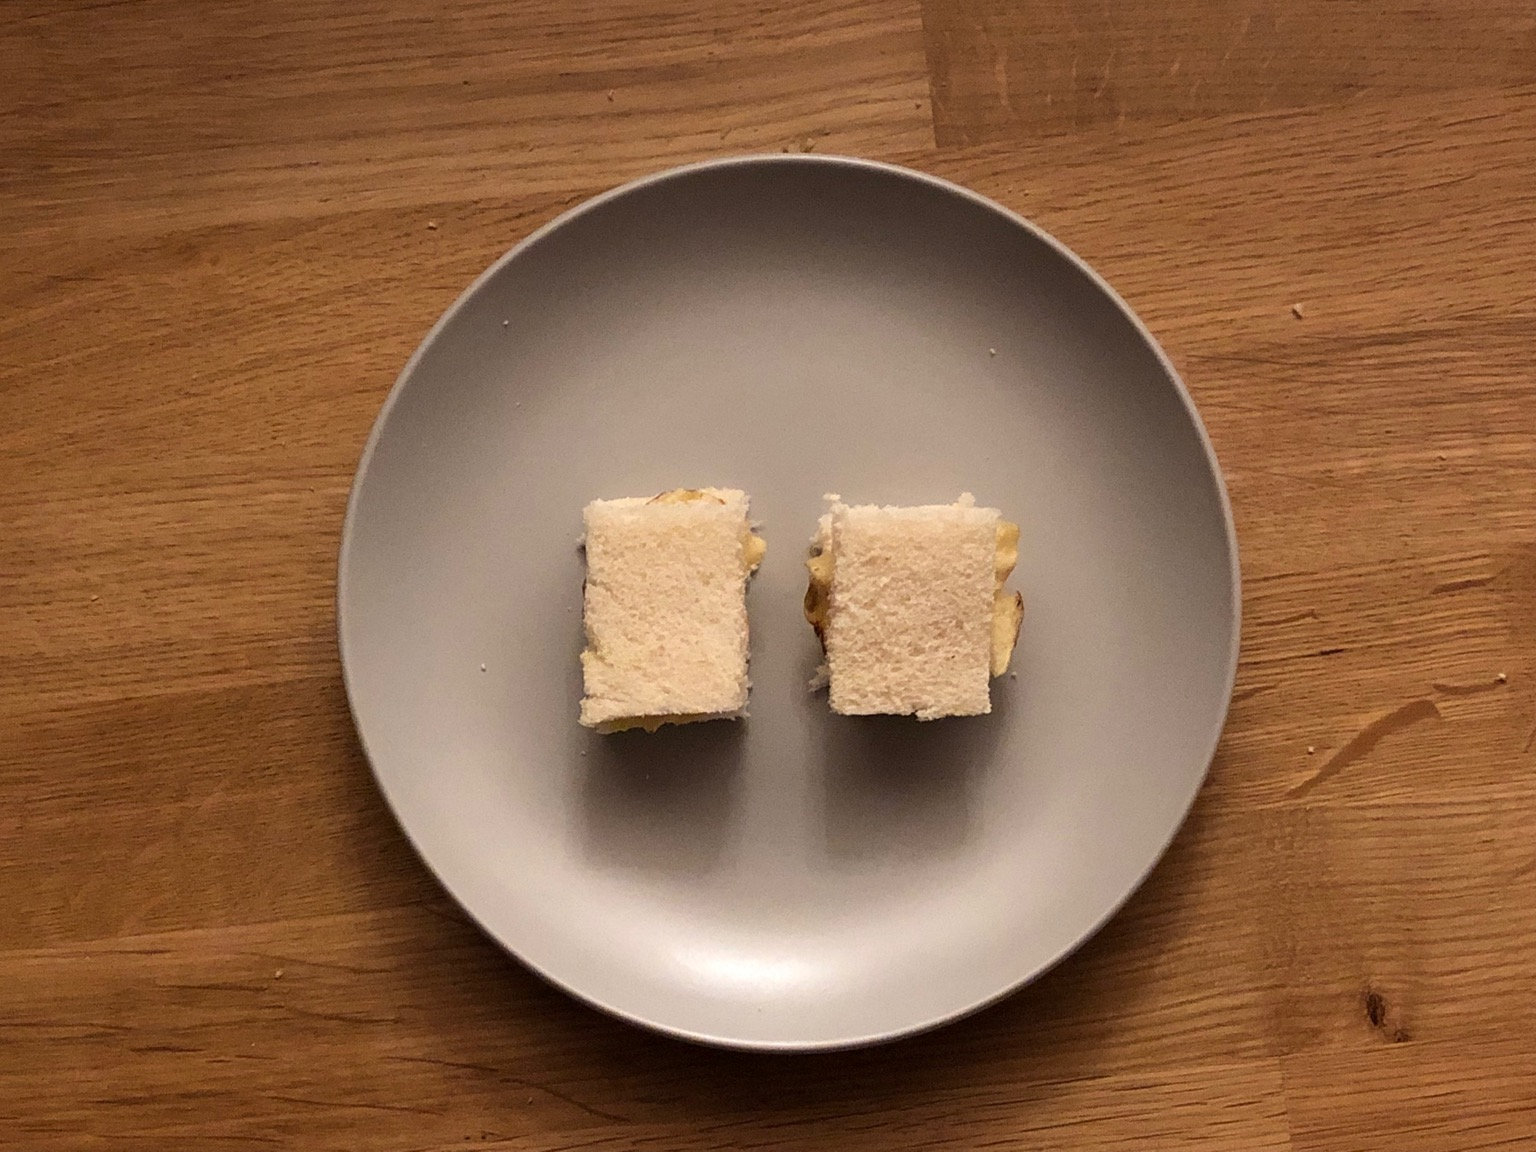 Overhead view of tiny white crisp sandwiches